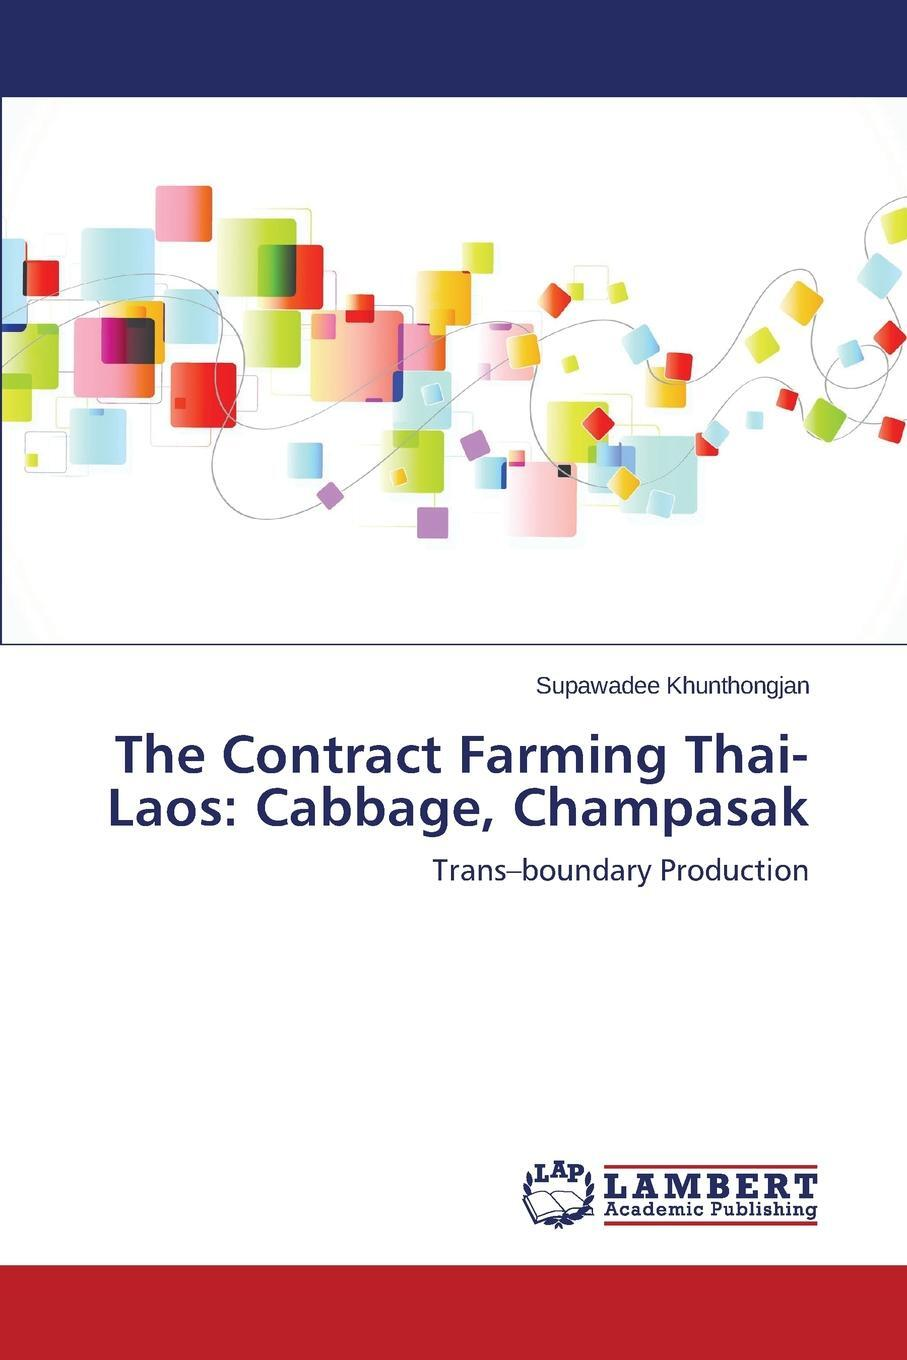 The Contract Farming Thai-Laos. Cabbage, Champasak. Khunthongjan Supawadee